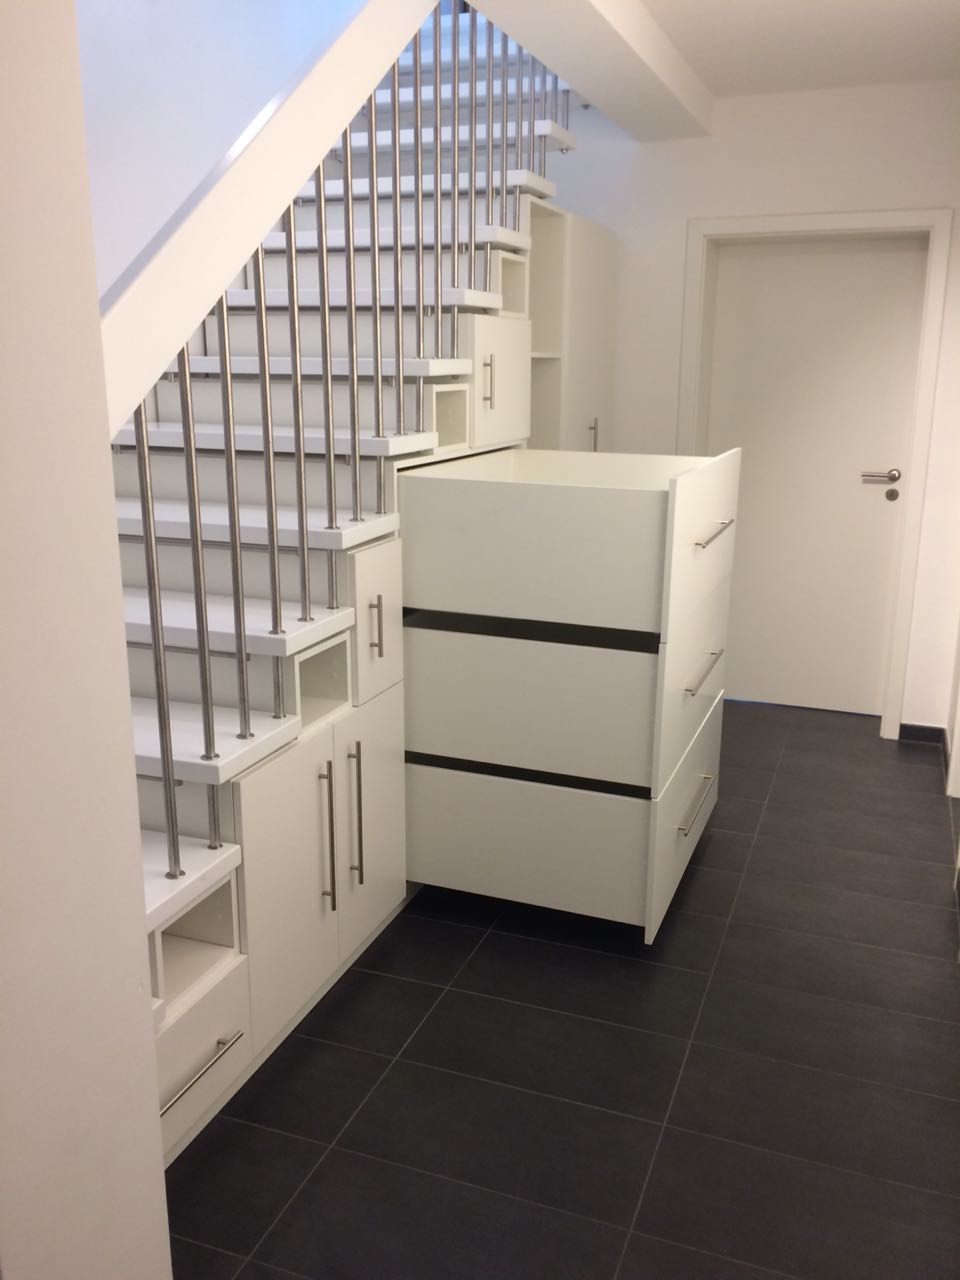 einbauschrank unter einer treppe in berlin zehlendorf stauraumfabrik. Black Bedroom Furniture Sets. Home Design Ideas